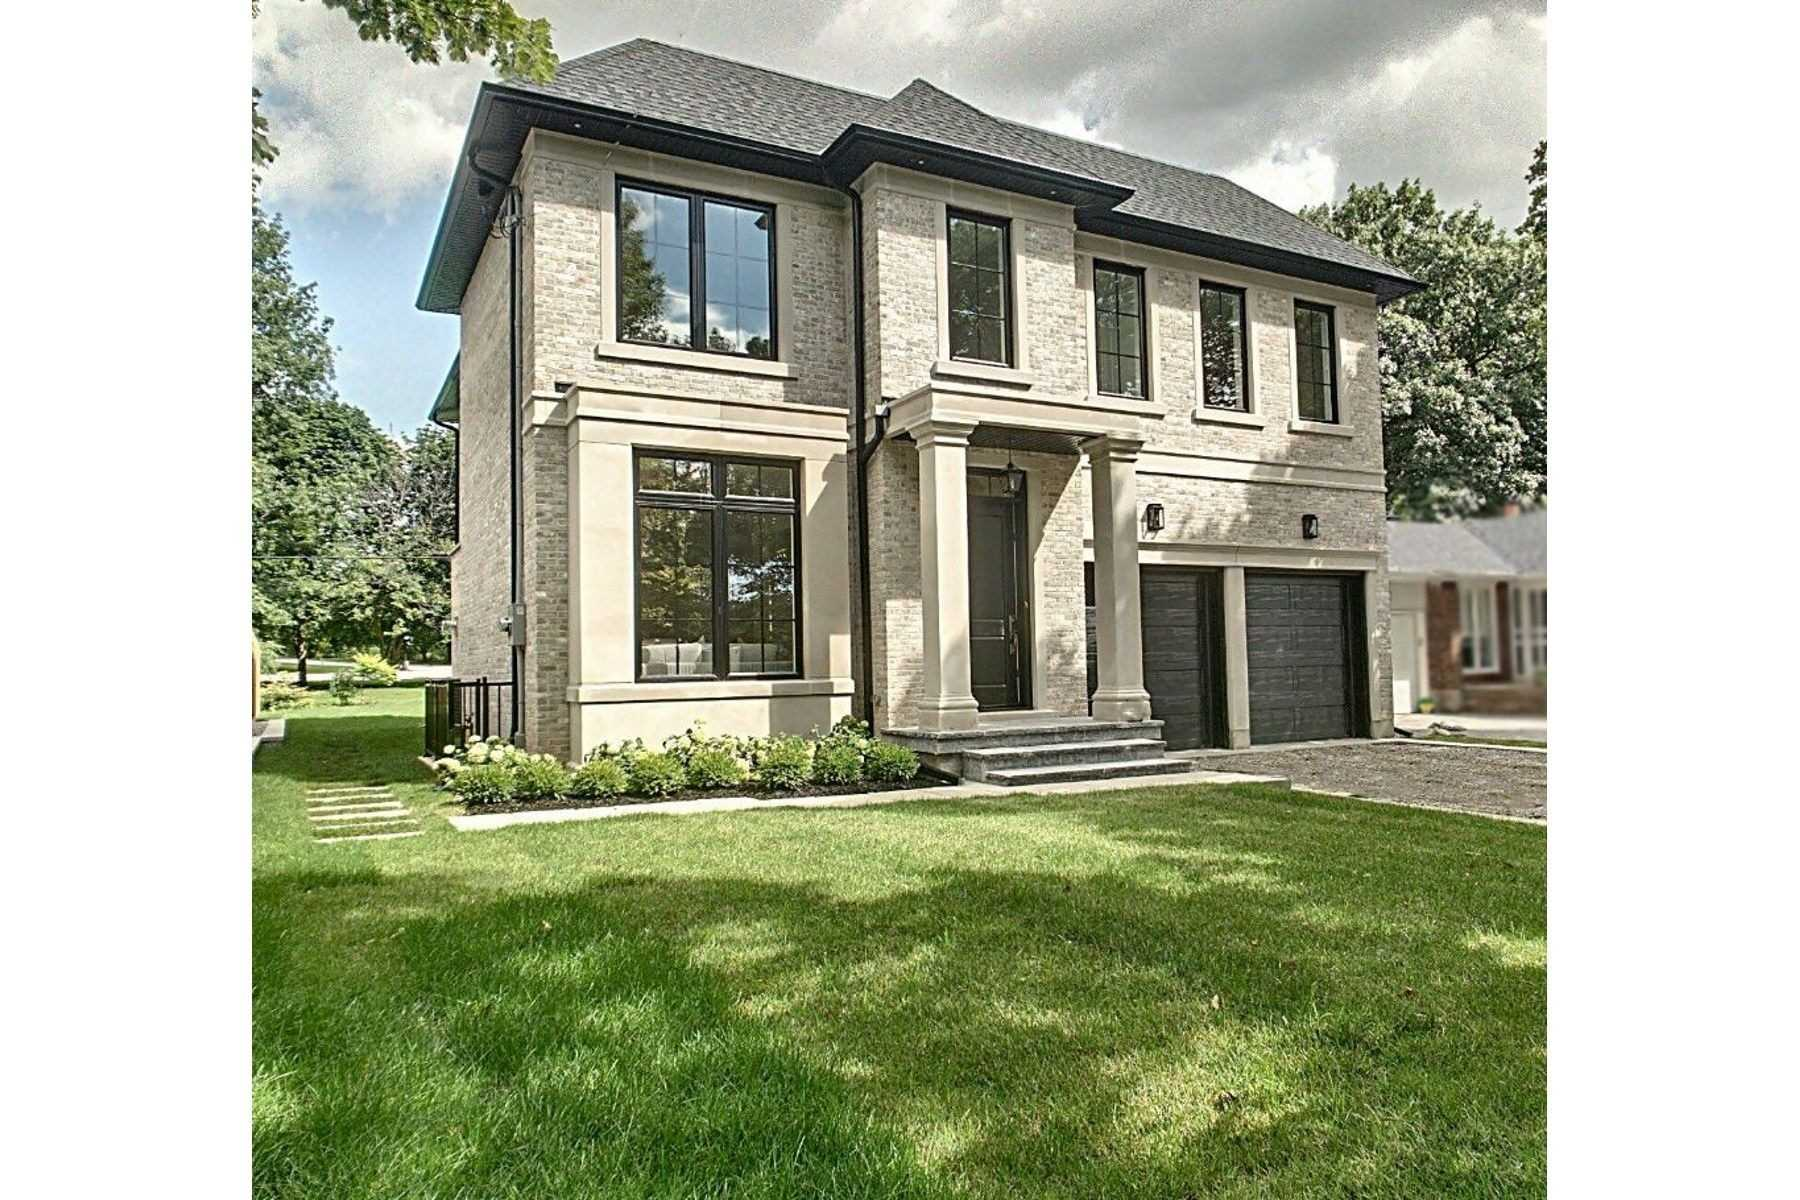 16 Mossford Crt, Toronto, Ontario M9B5T4, 4 Bedrooms Bedrooms, 10 Rooms Rooms,5 BathroomsBathrooms,Detached,For Sale,Mossford,W4858385